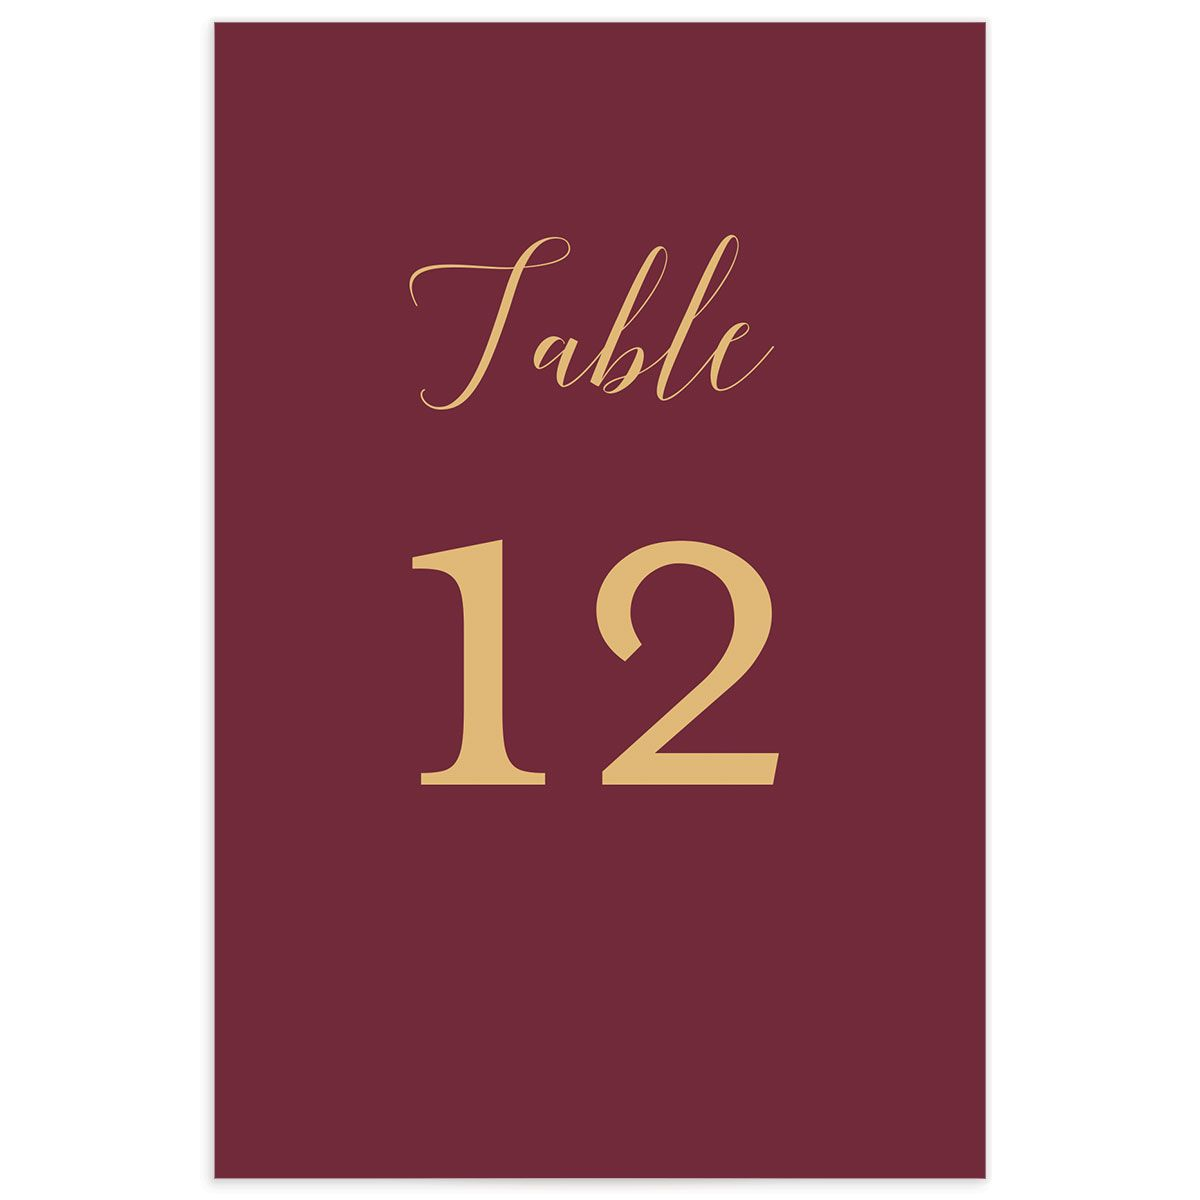 Marble and Gold table number front in red